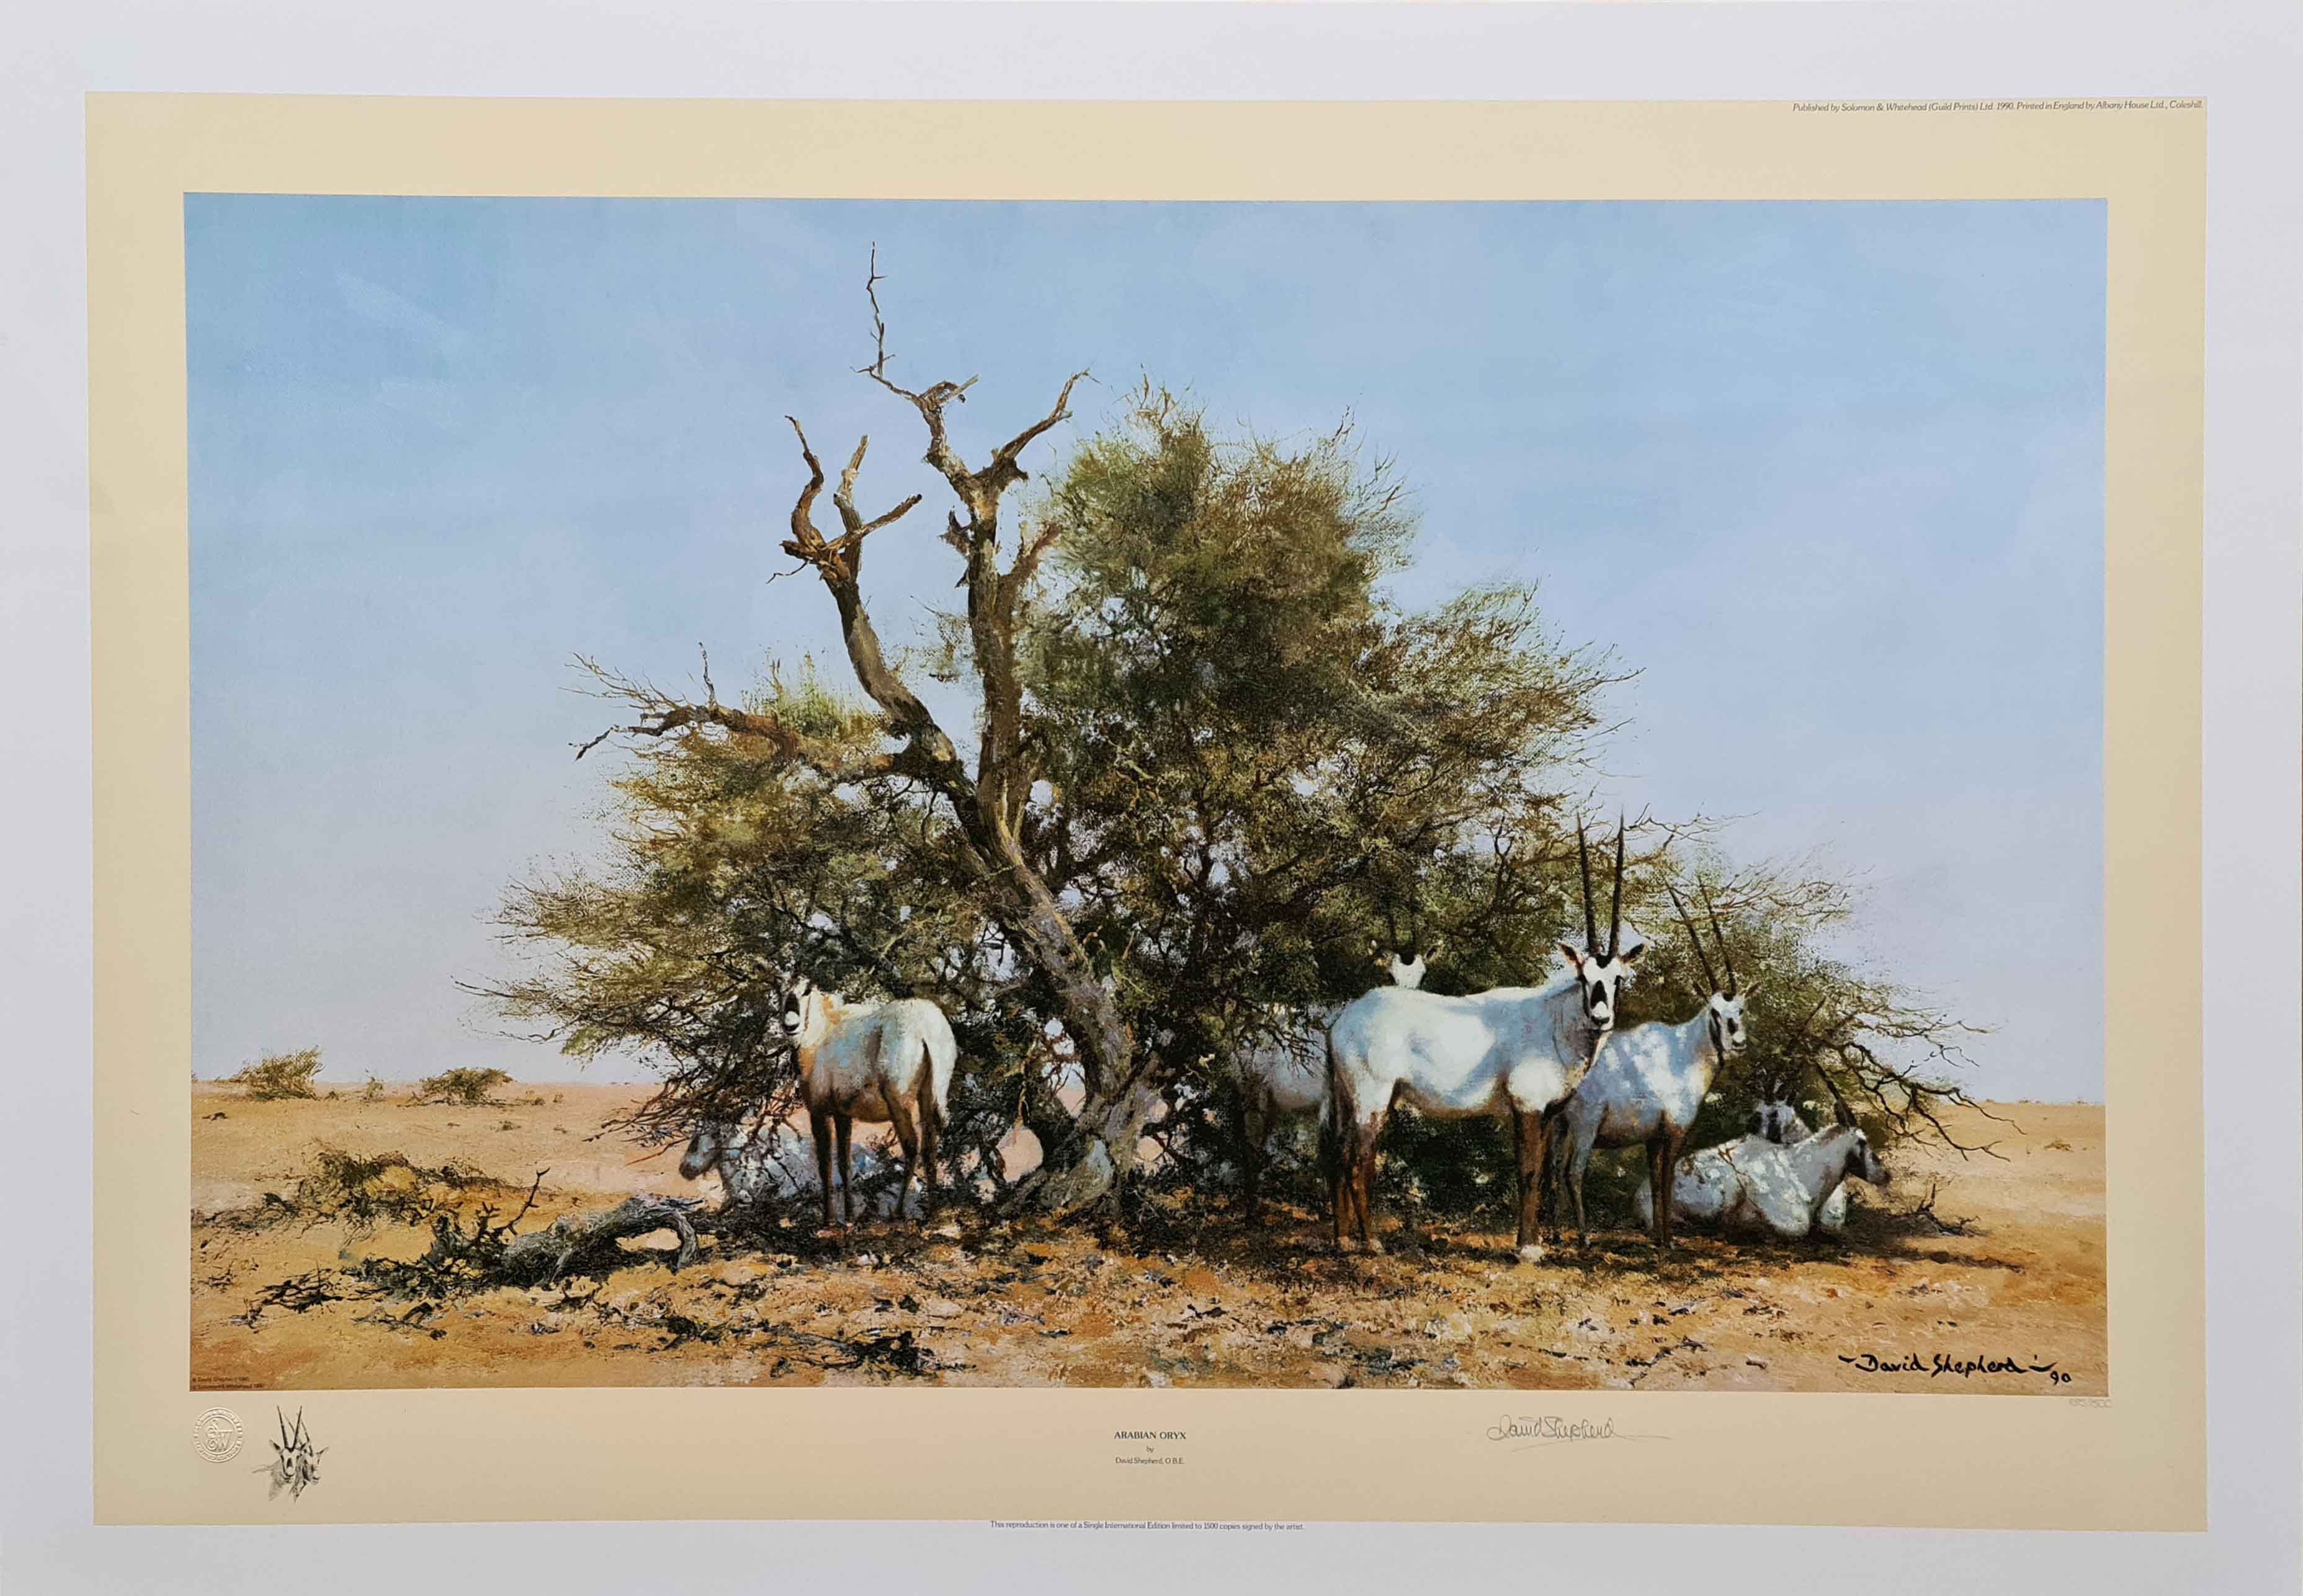 david shepherd, Arabian Oryx, signed limited edition print